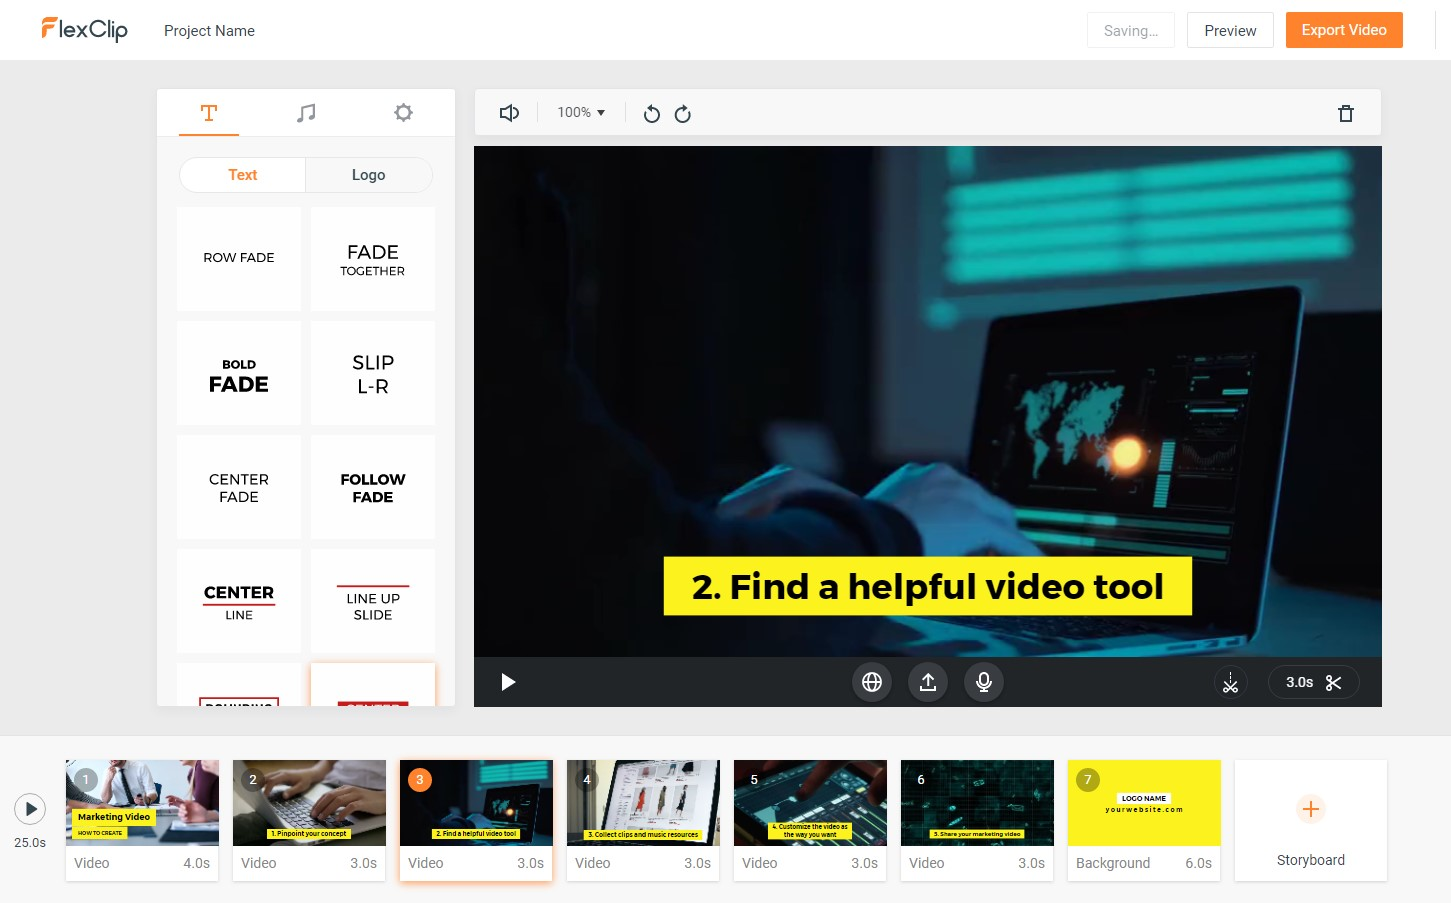 [Giveaway] How to Make Your Own Videos Online with FlexClip